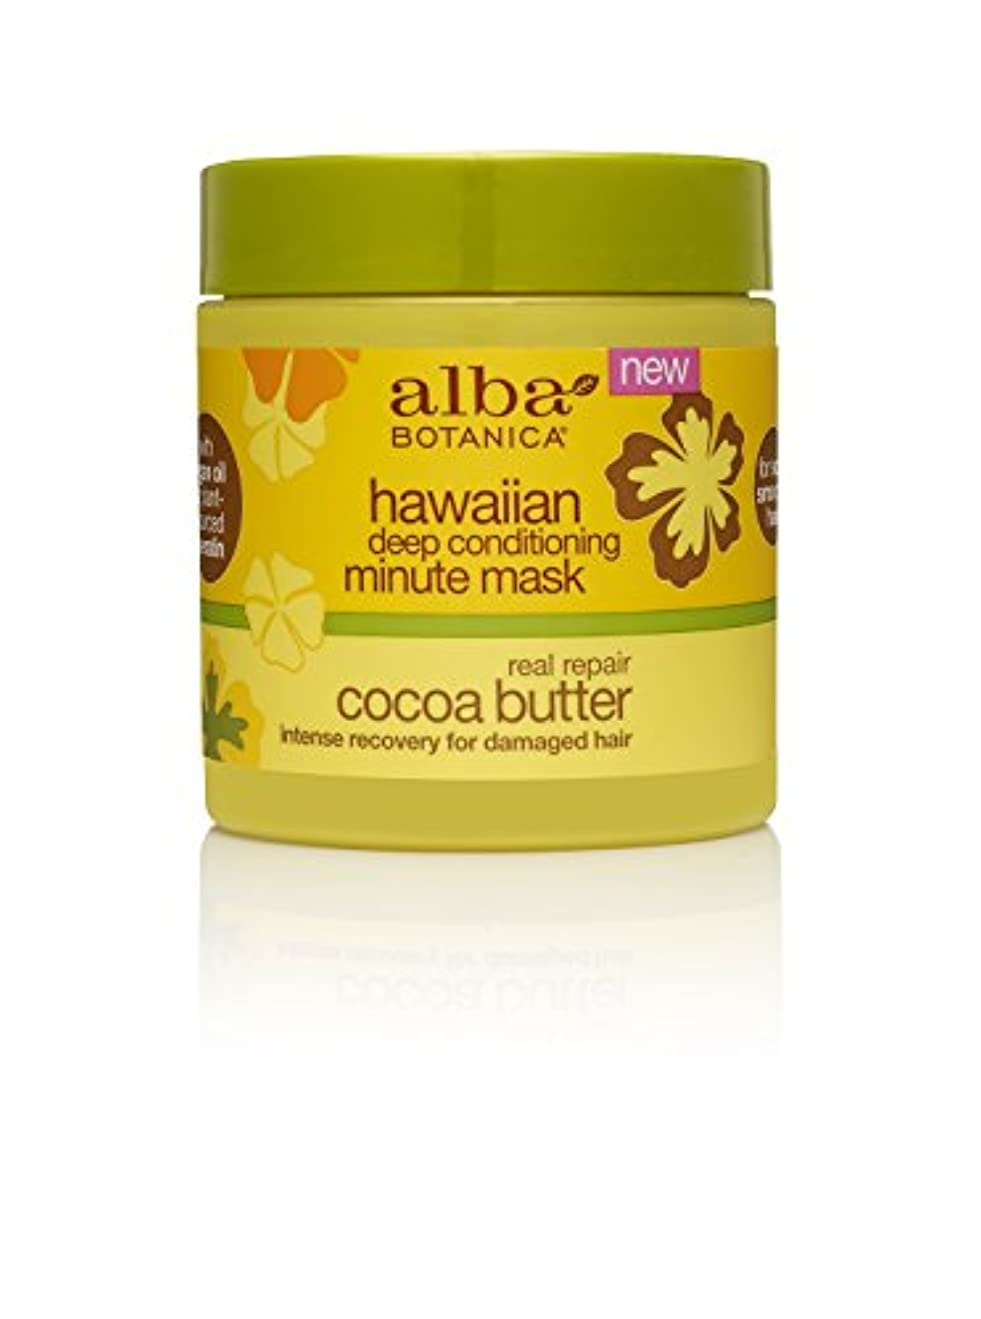 スーパーマーケットこどもセンター懺悔海外直送品Hawaiian Deep Conditioning Real Repair Minute Mask, Cocoa Butter 5.5 oz by Alba Botanica